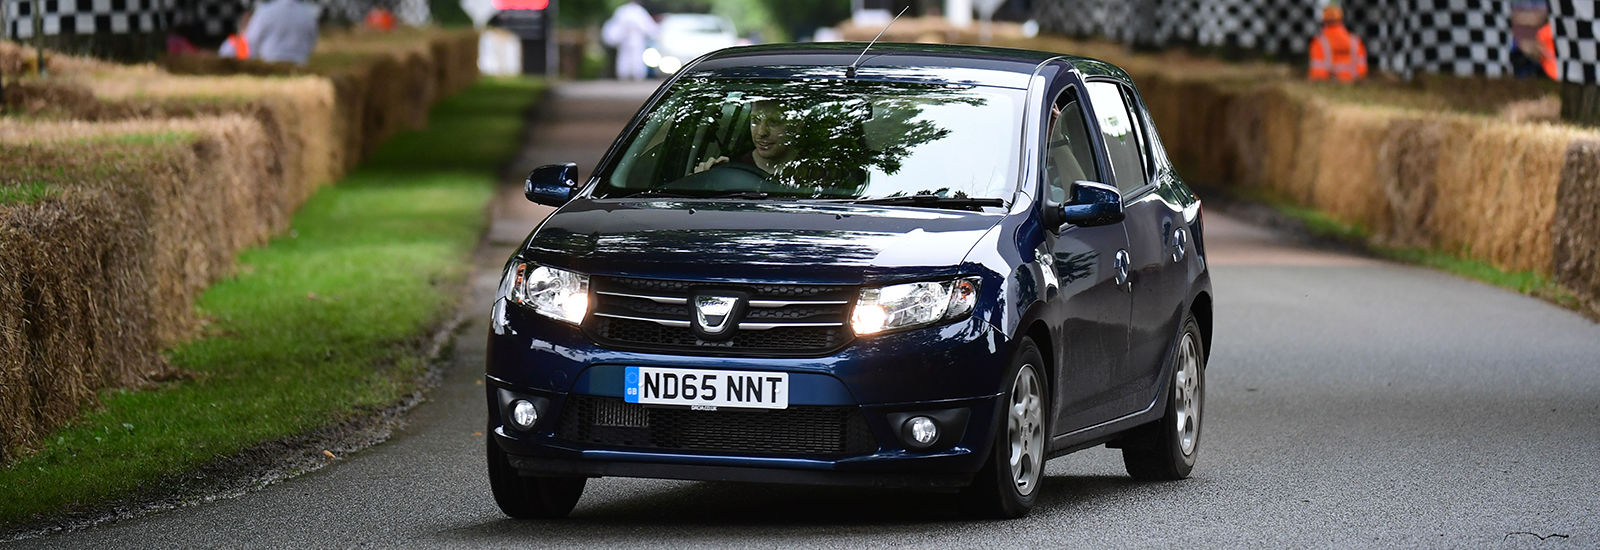 The Best Cars For Learner And New Drivers Carwow